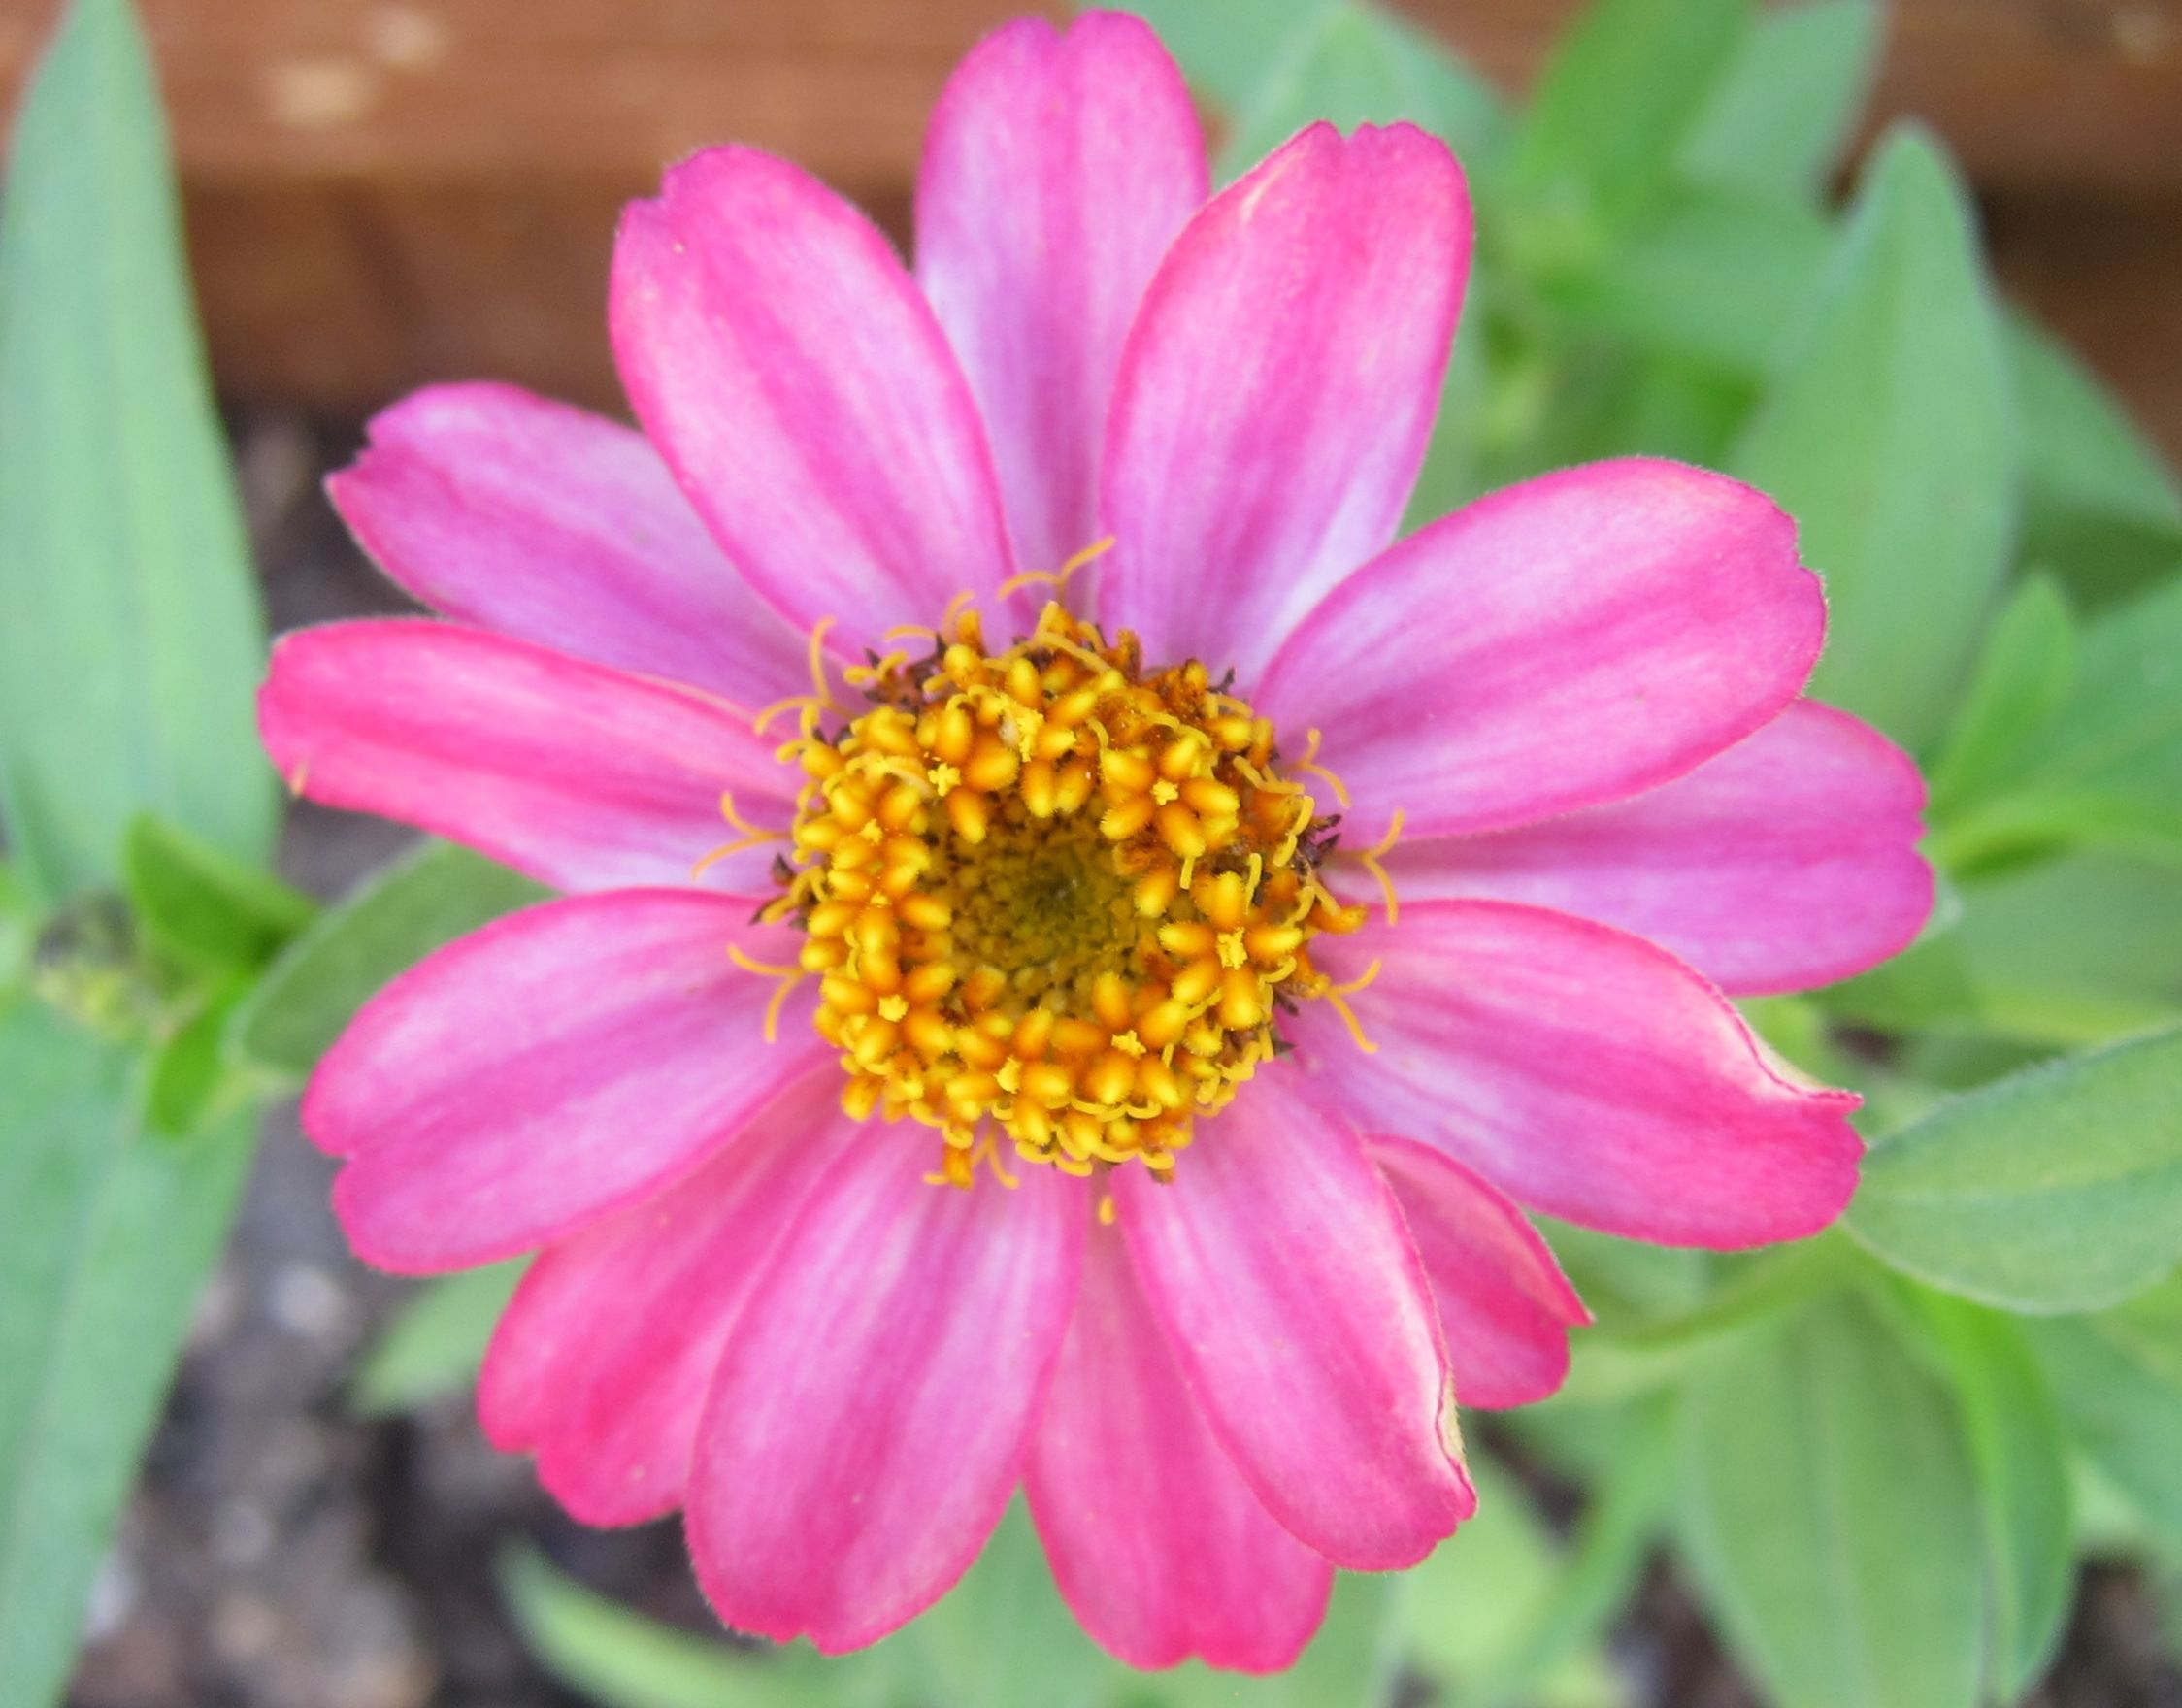 Zinnia, meaning thoughts of absent friends. Flower